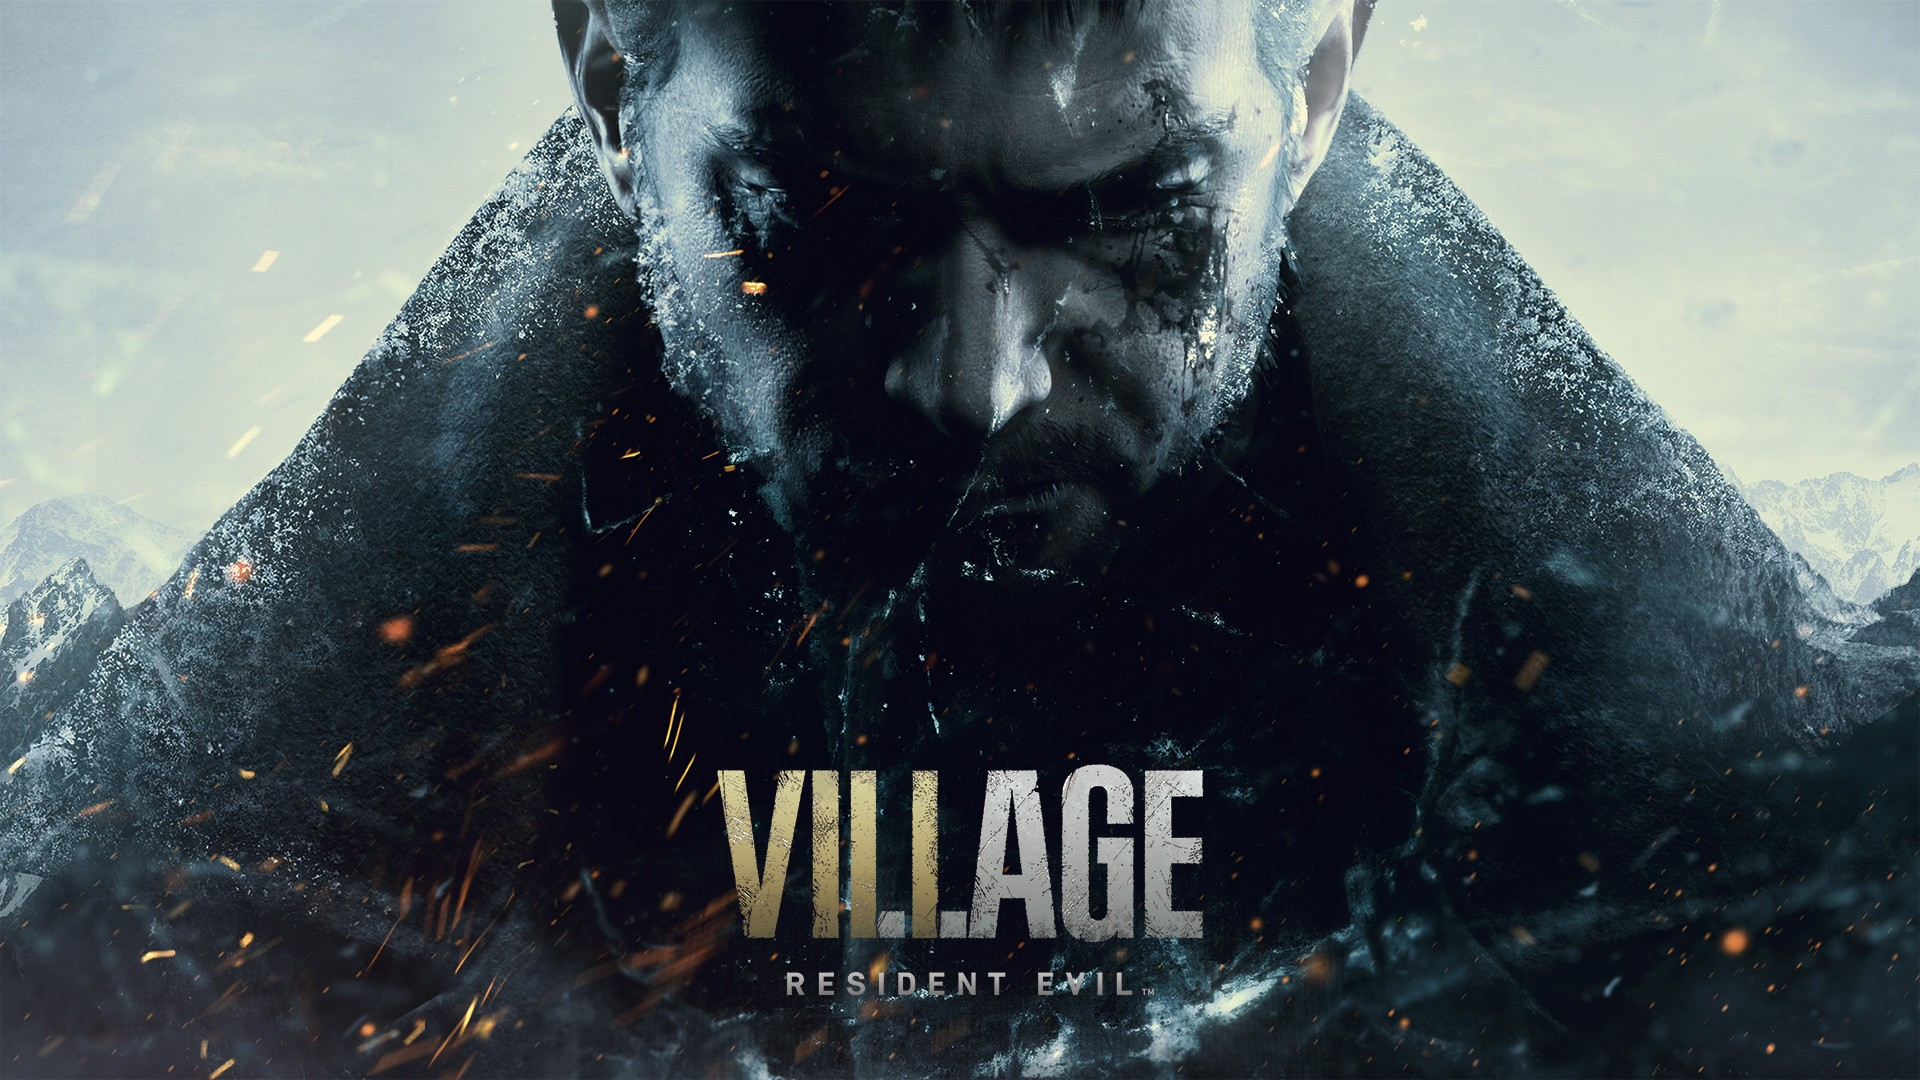 Resident Evil Village Gameplay Revealed During Showcase, Game Will Arrive on May 7, 2021, for Xbox Series X S and Xbox One, PS4, and PS5